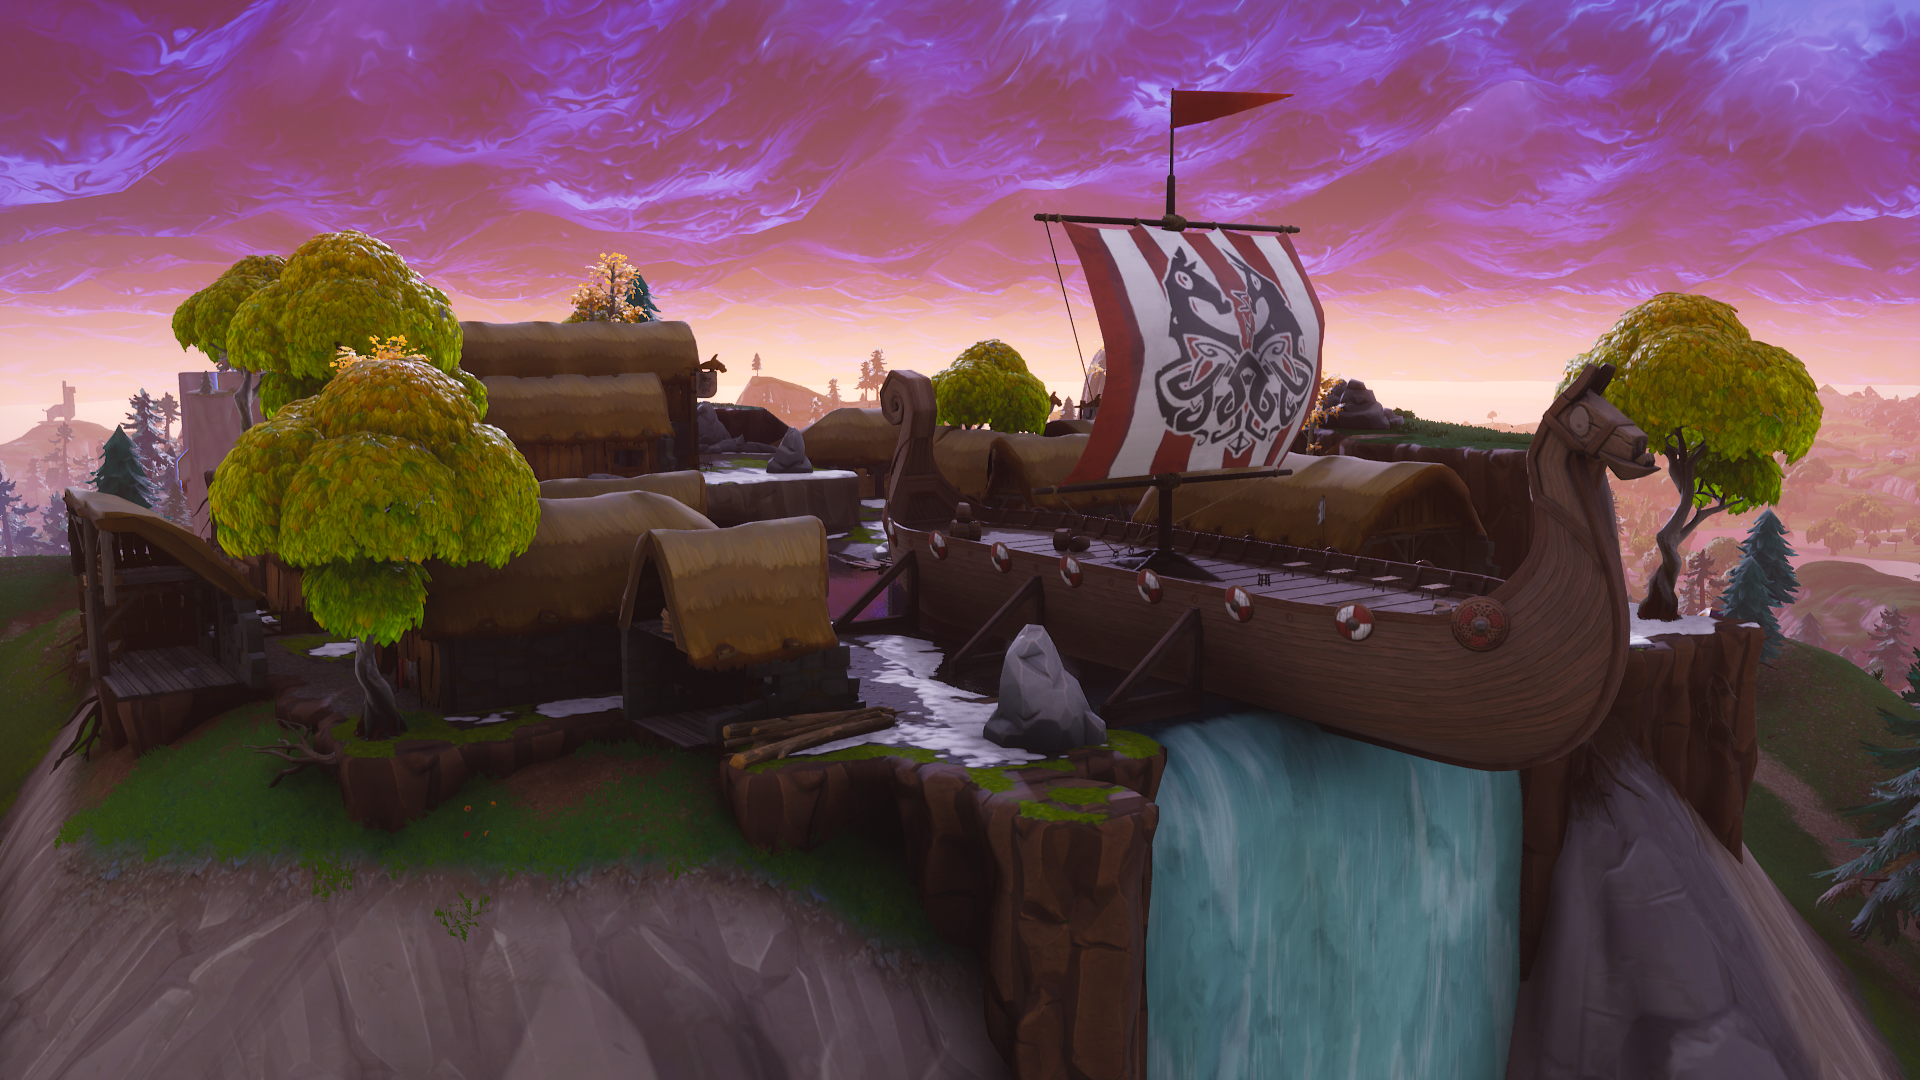 Fortnite Backgrounds Hd Posted By Ethan Sellers